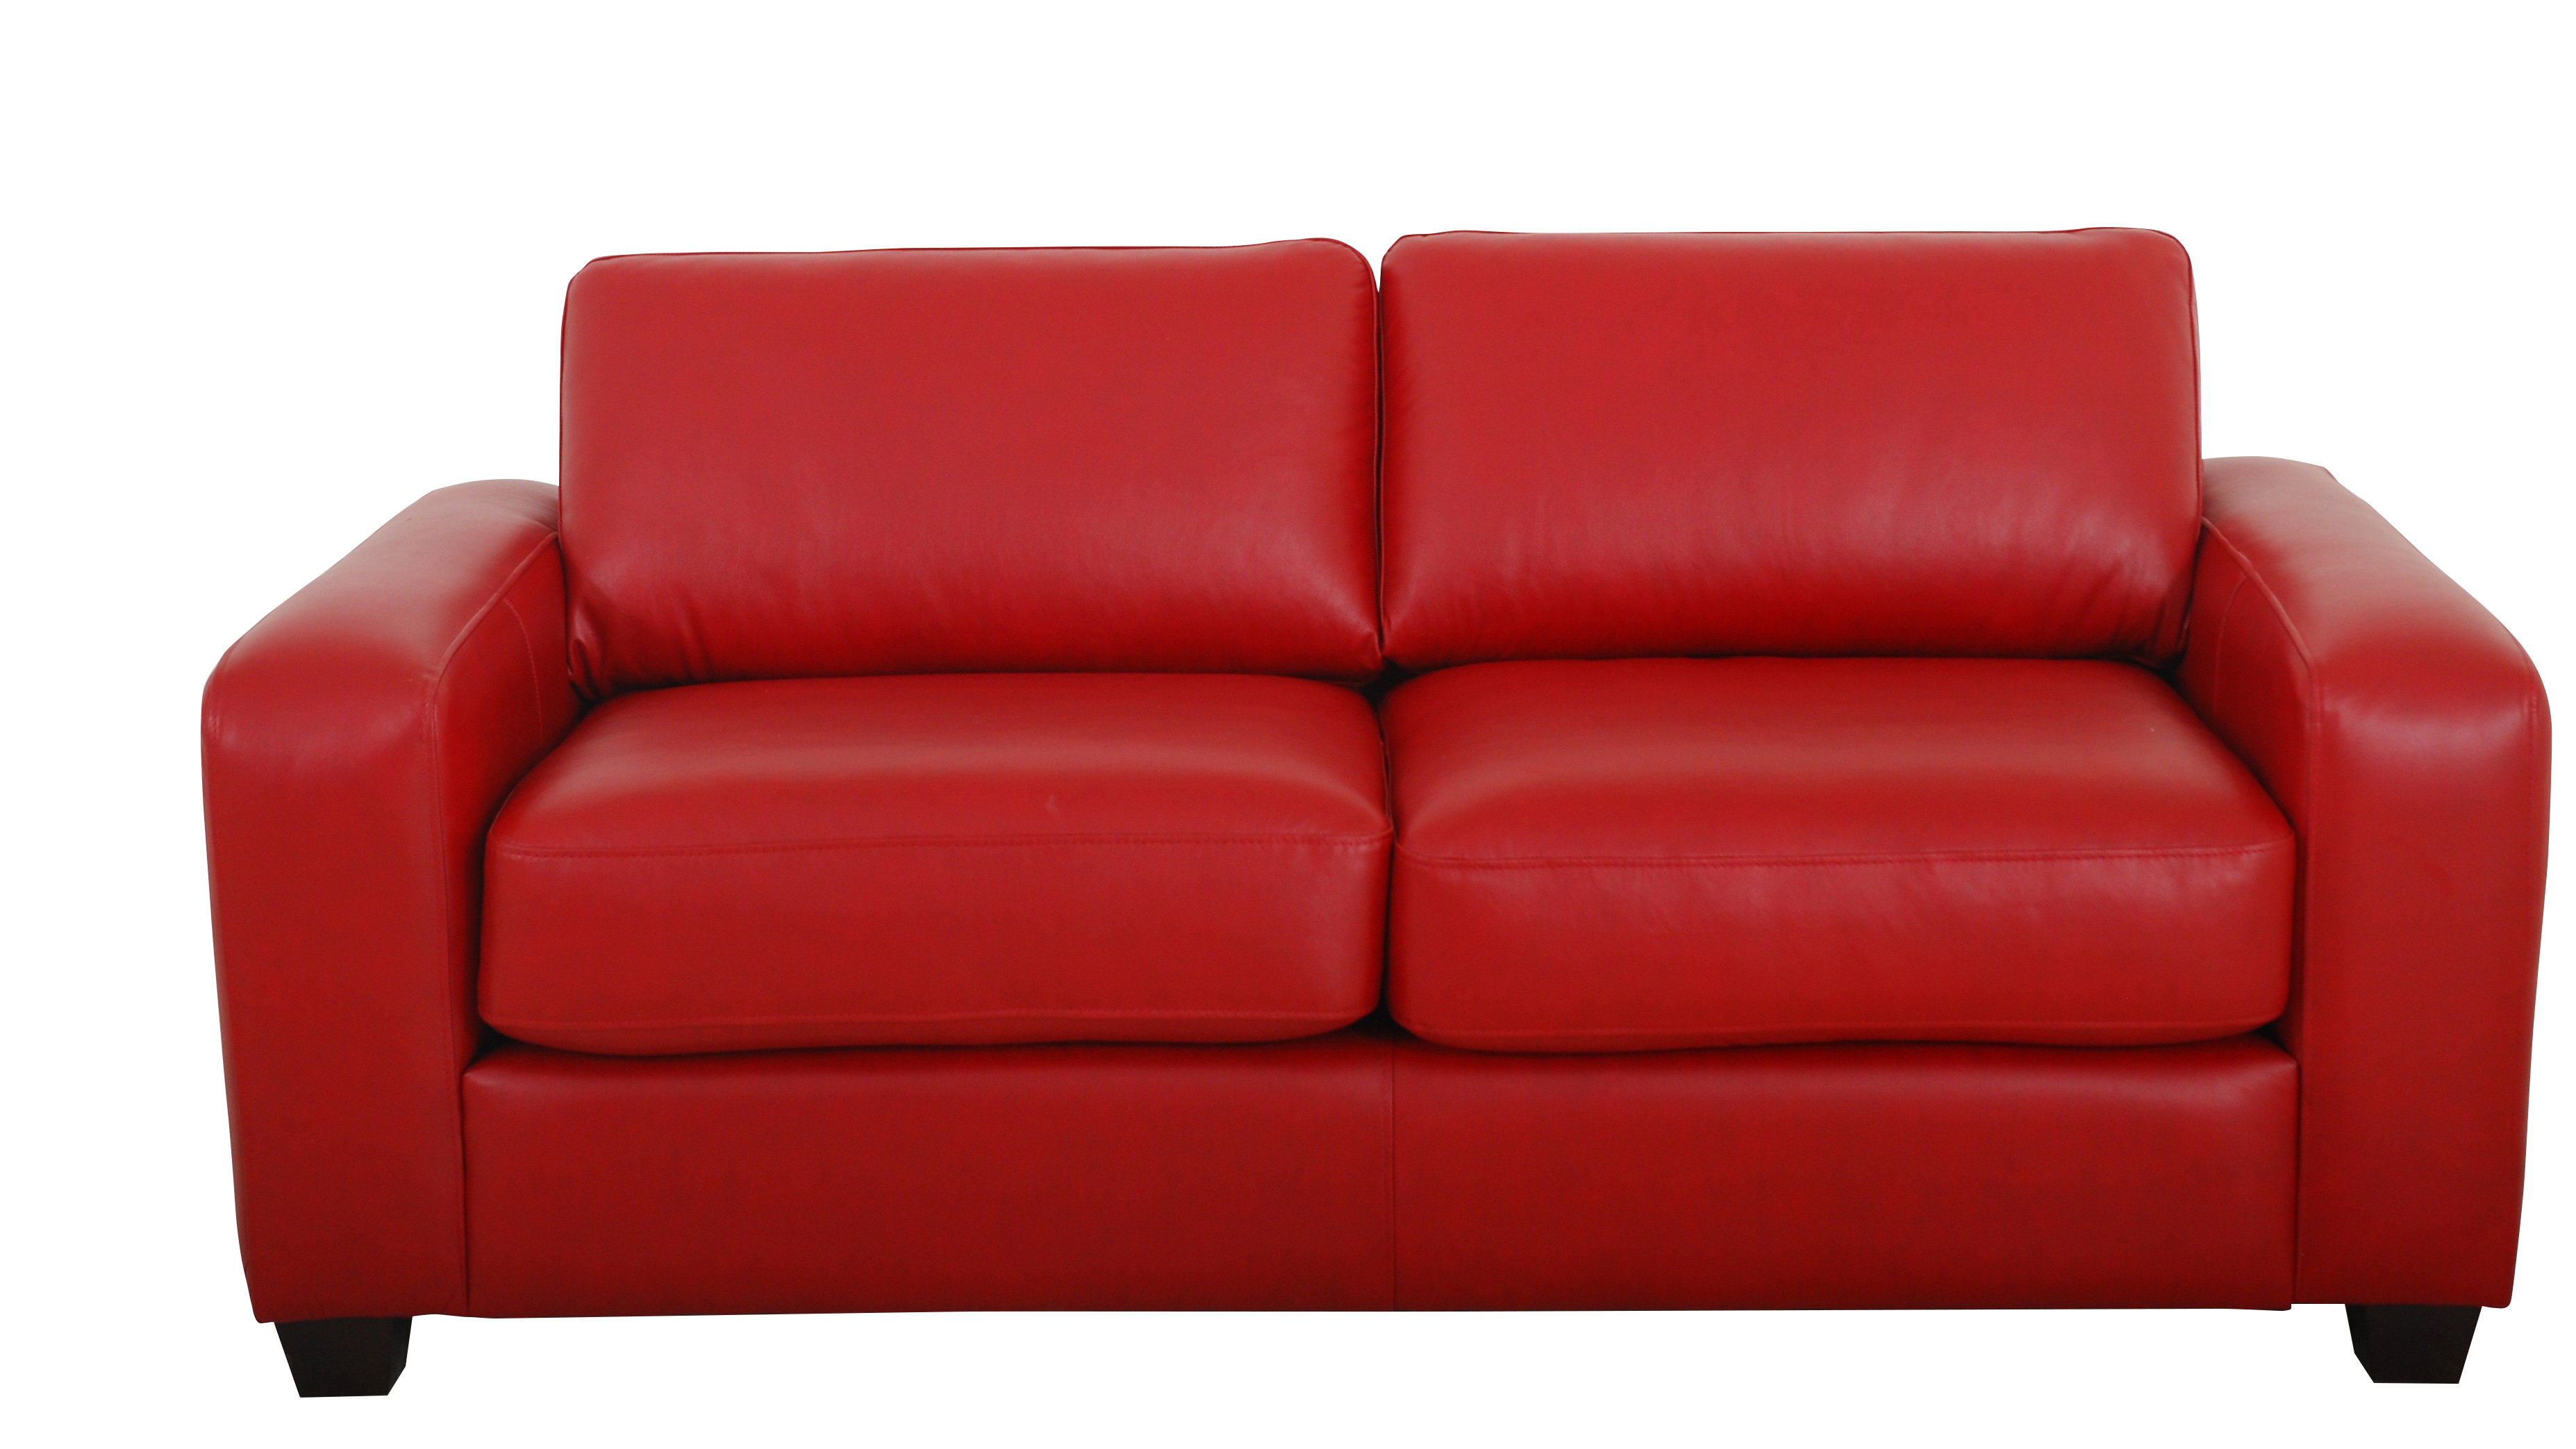 Couch home - Furniture picture ...